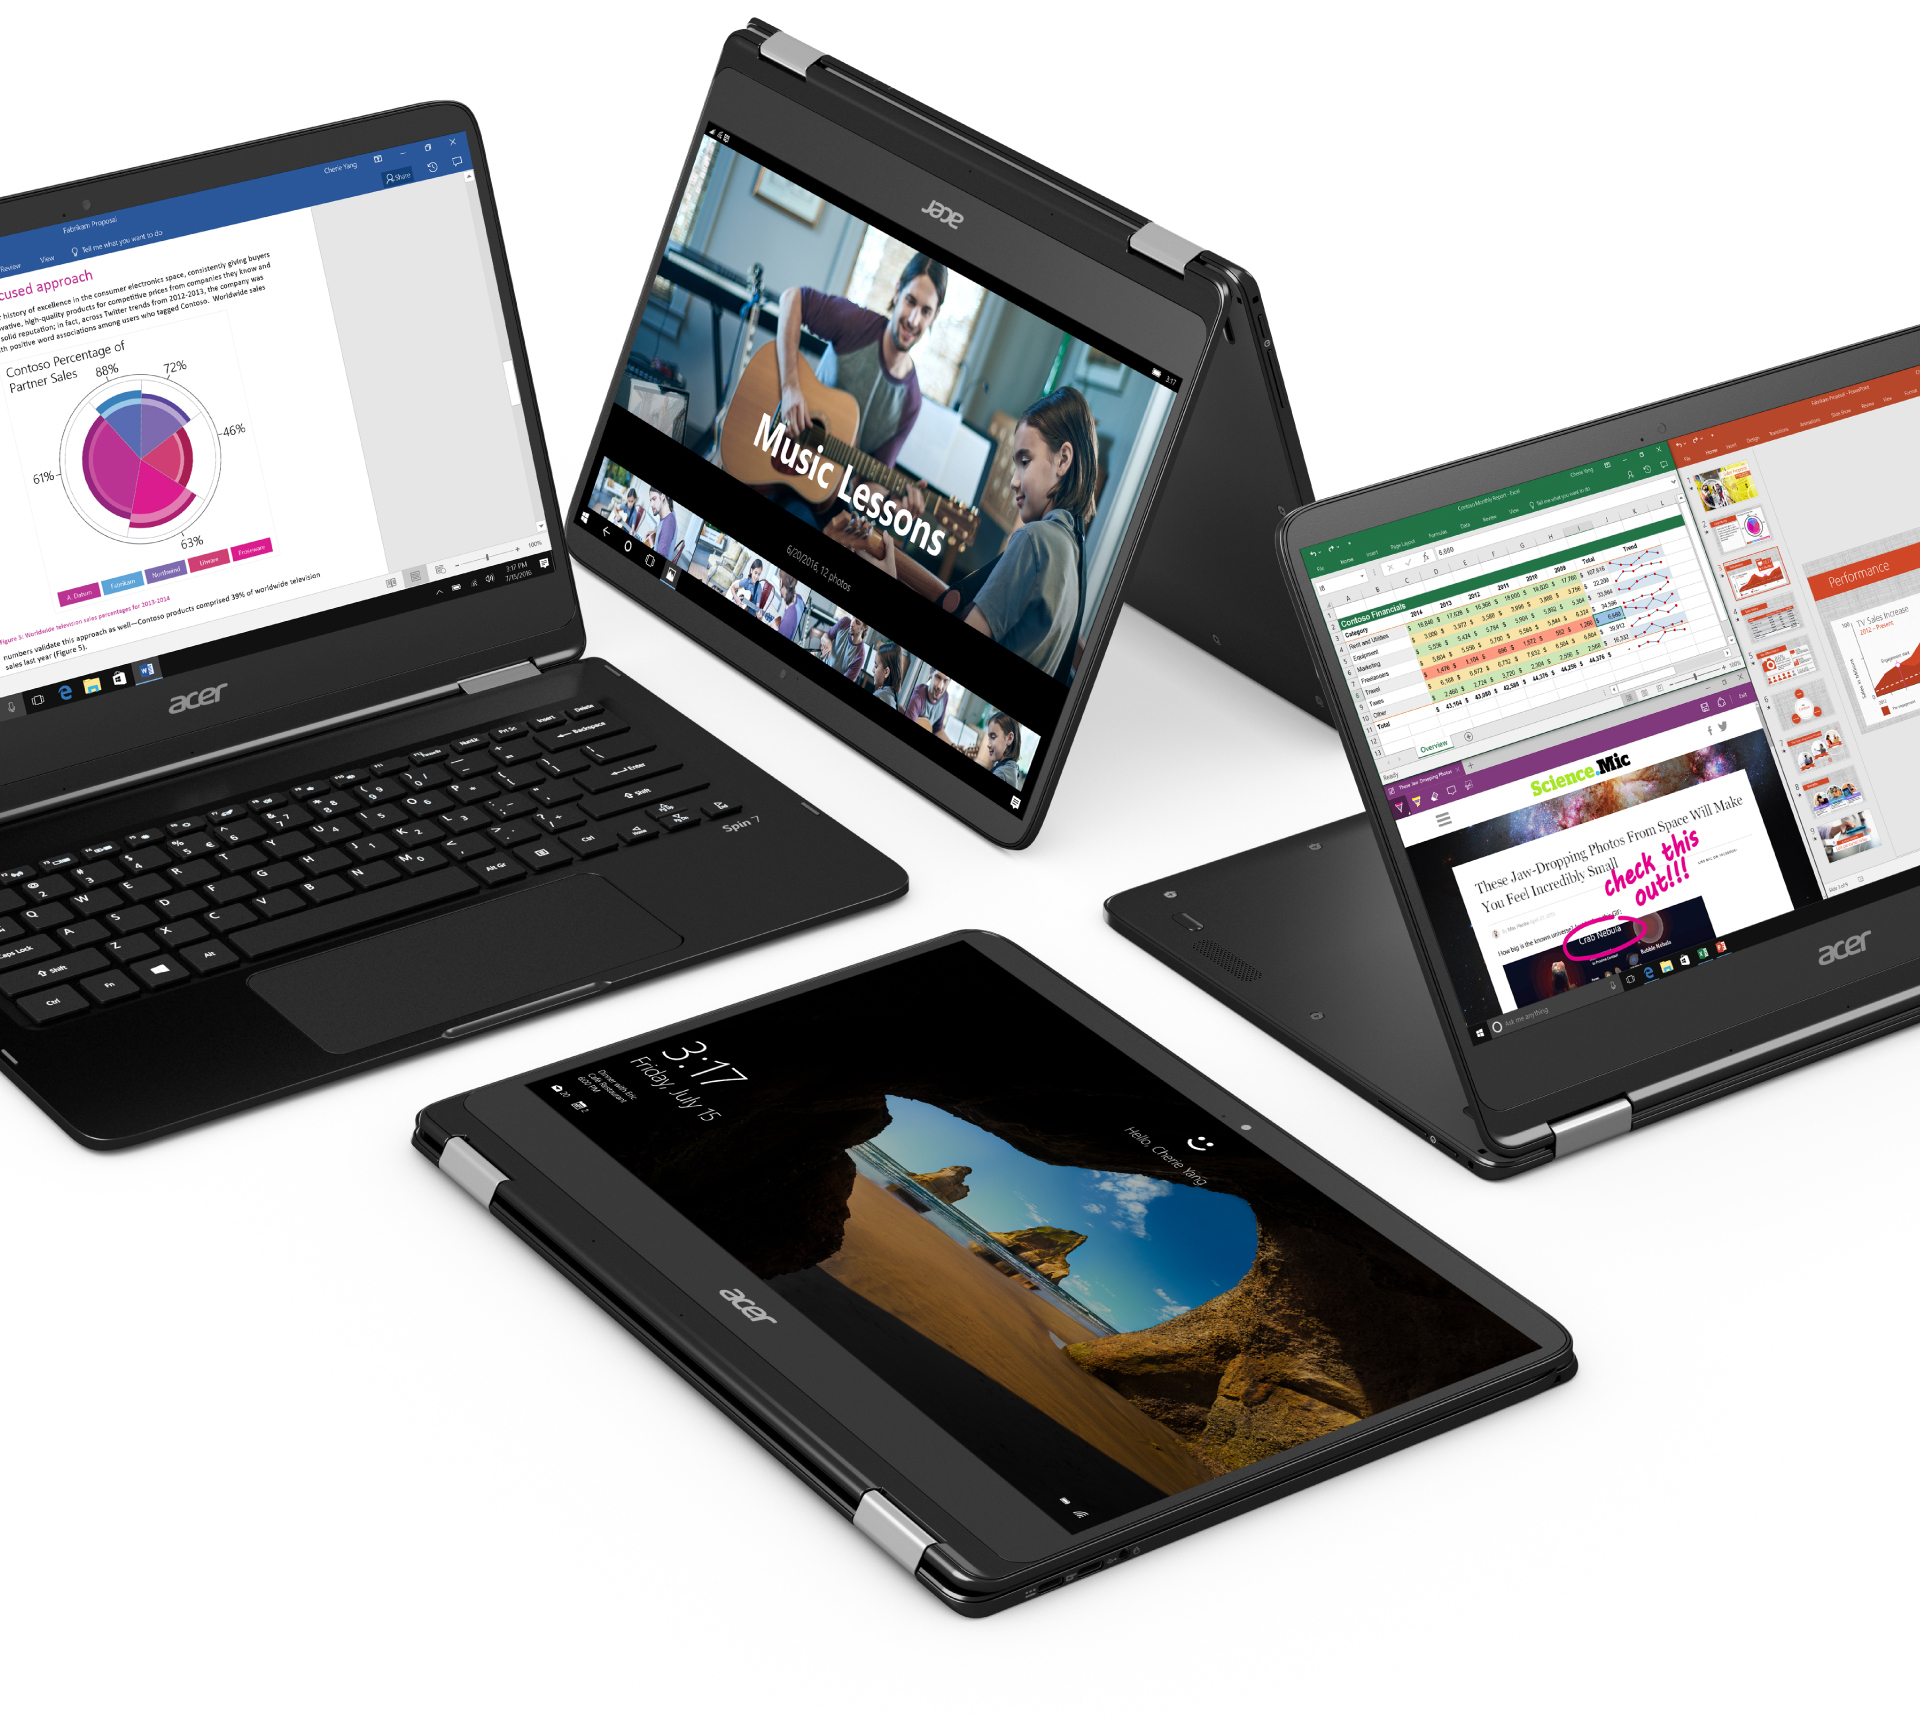 Small Acer Laptops: The Convertible Spin 7